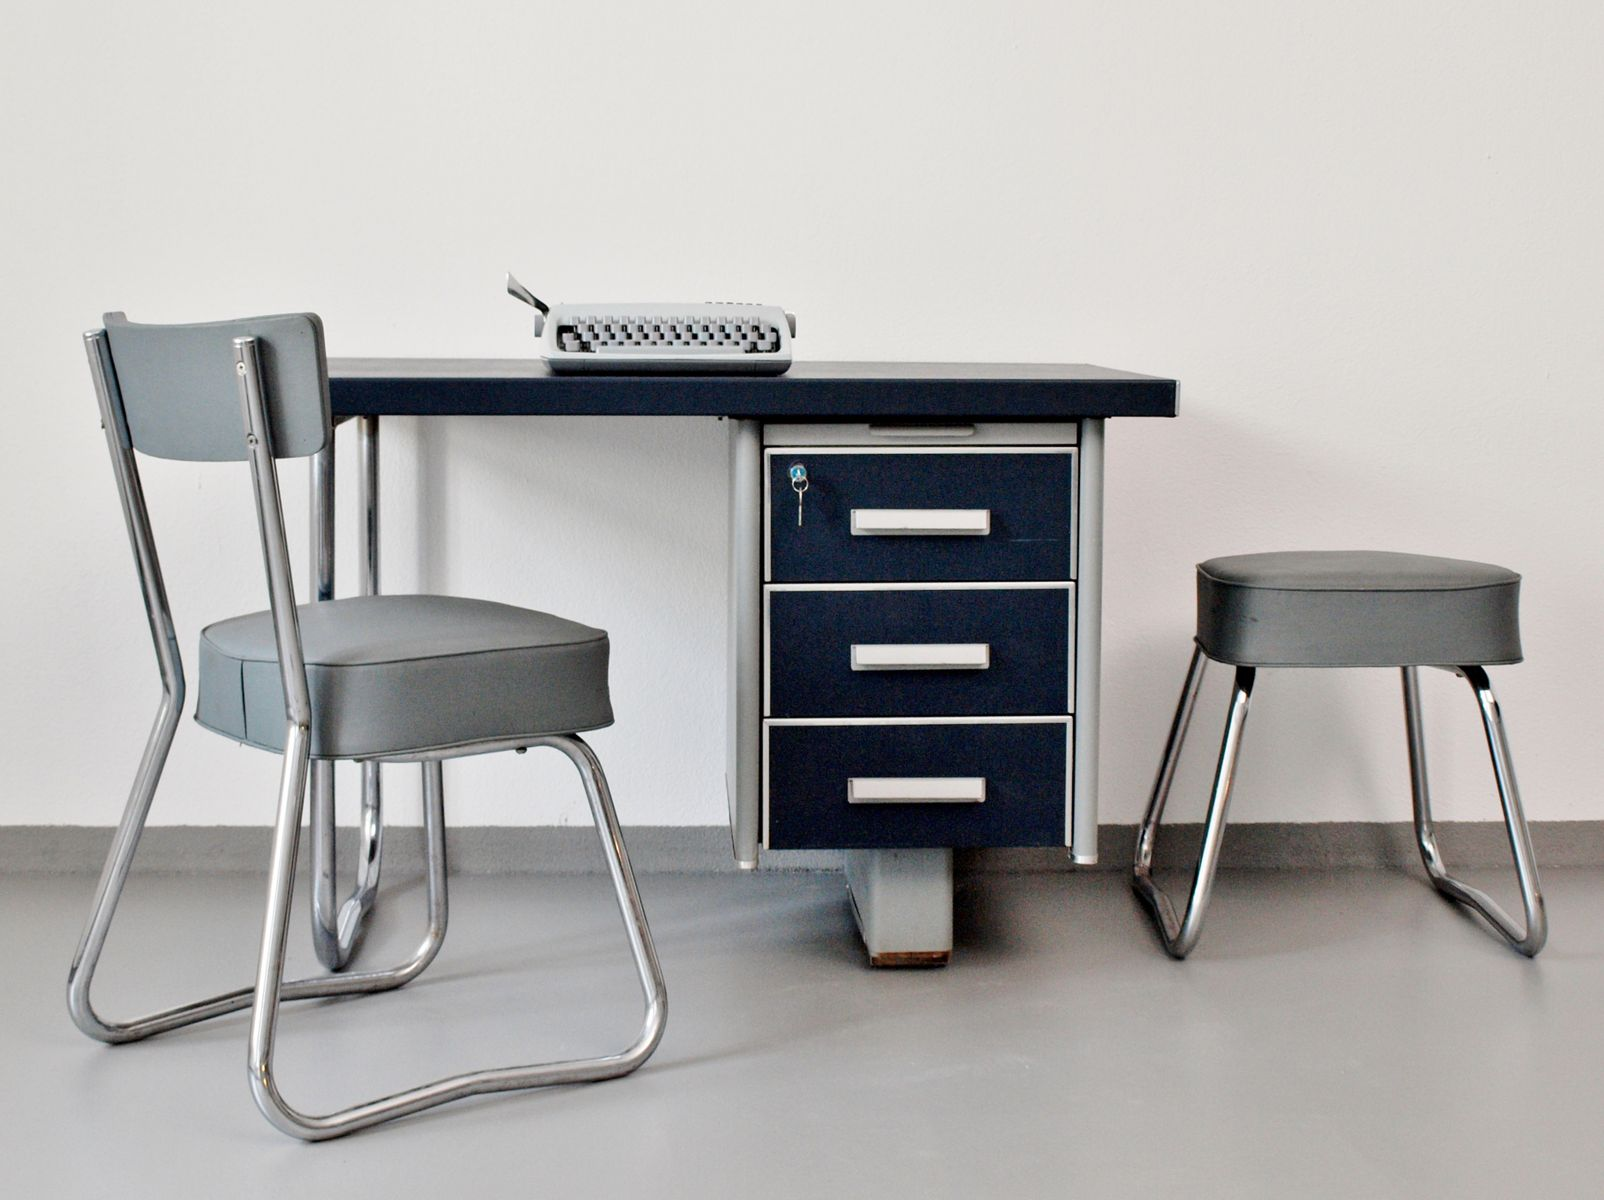 Pullman Sessel Desk With Chair And Stool From Pullman 1950s